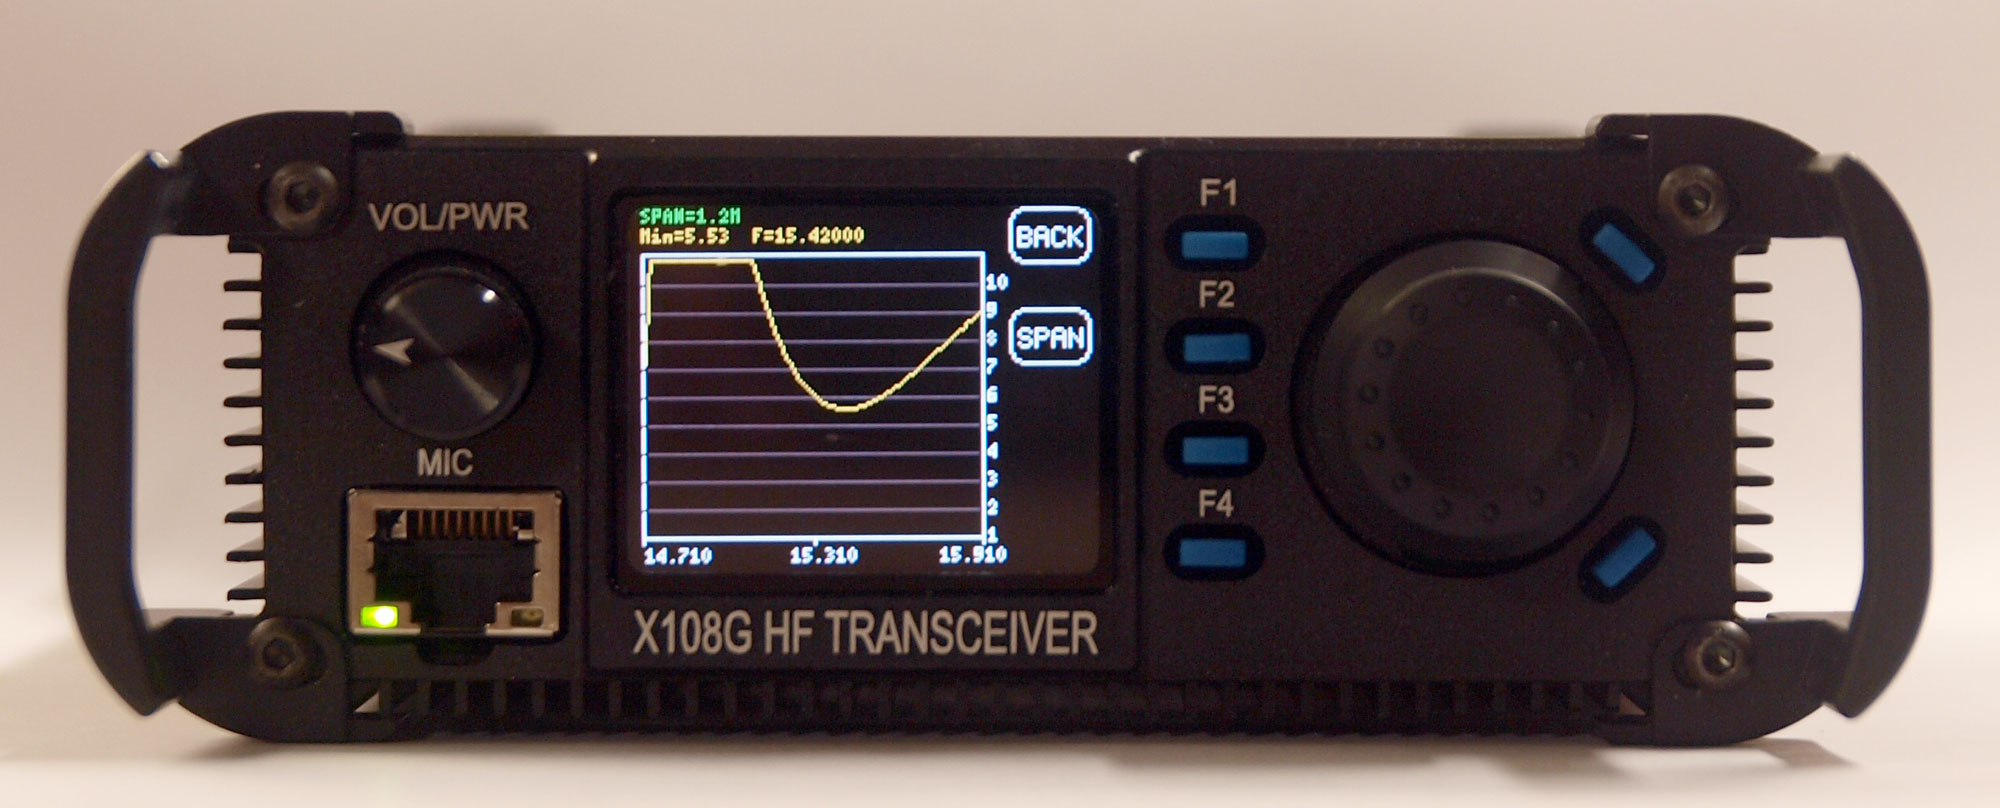 X108G 20 Watt HF Amateur Transceiver - Outdoor Version - Latest Revision with SWR analyser